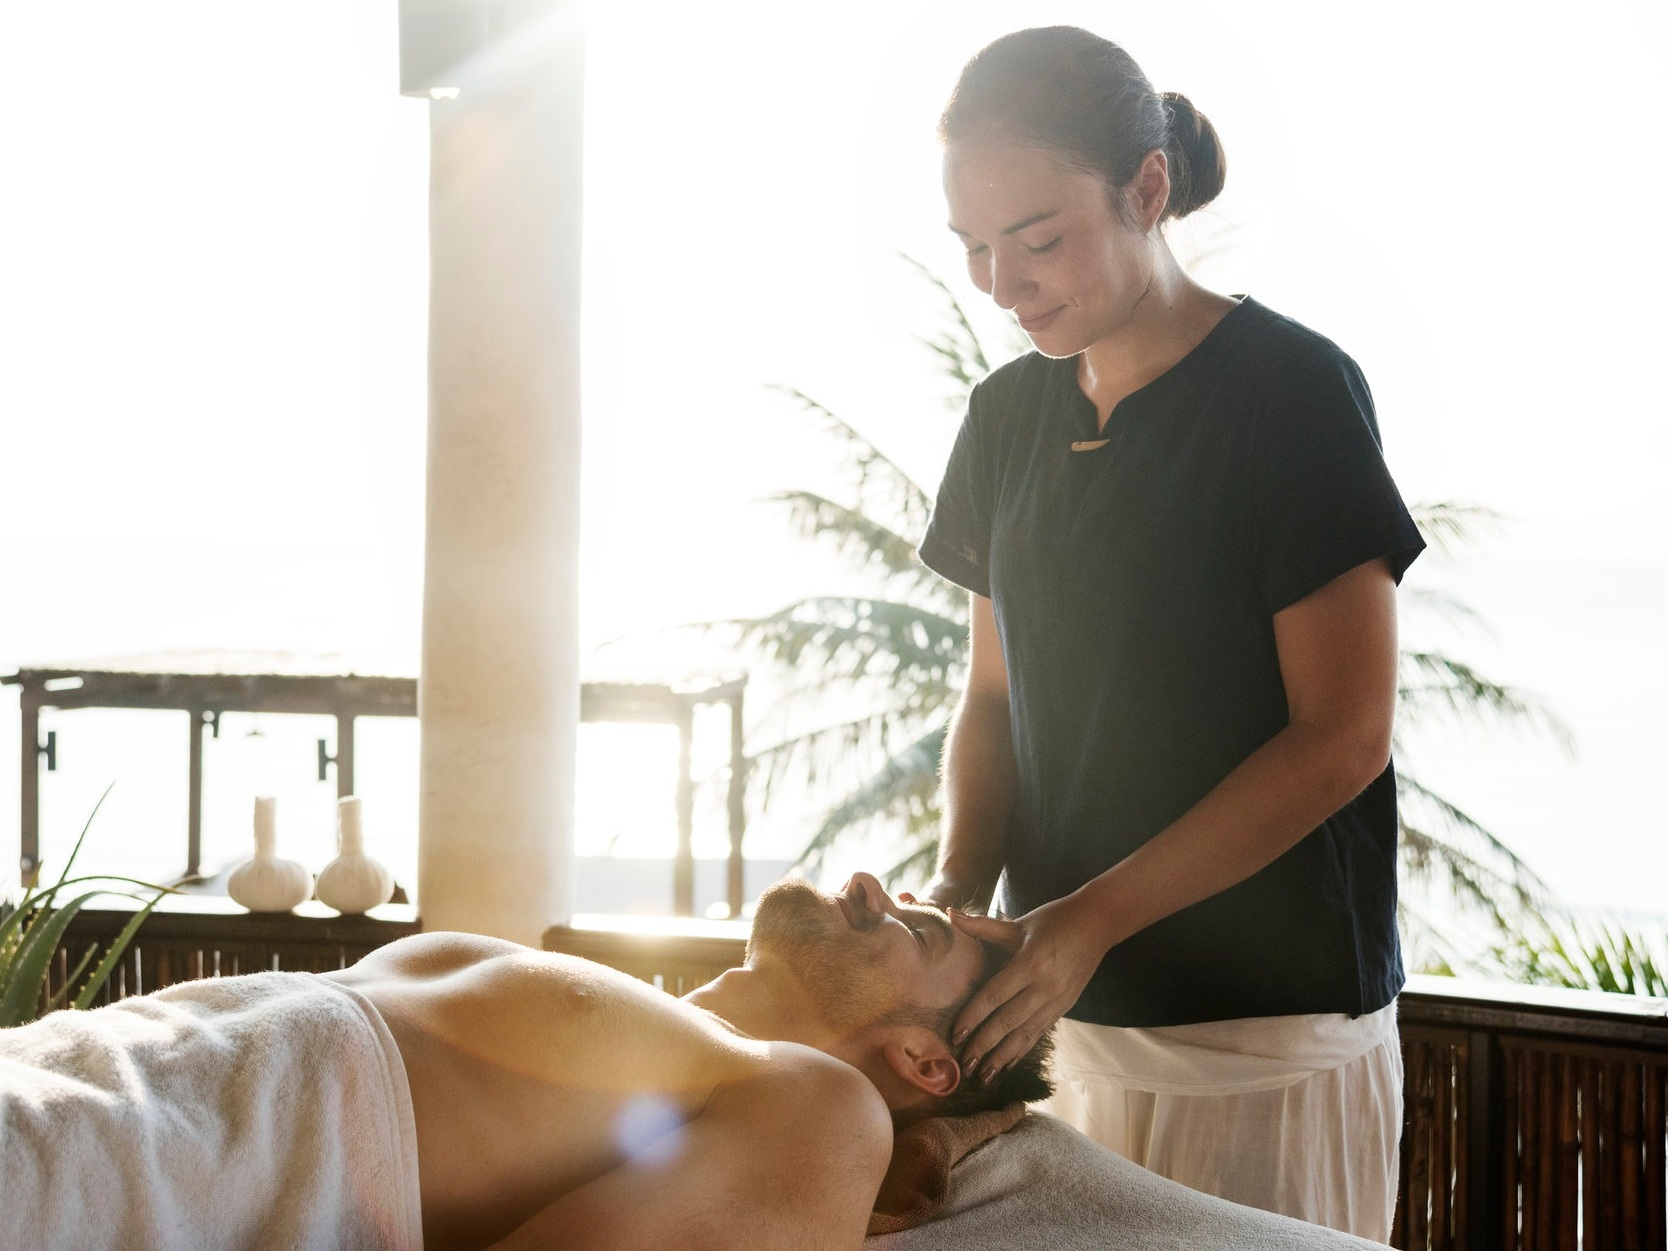 Full Body Massage - Our full body massage will provide you Swedish ,Chinese TuiNa , Siatsu, Thai Massage combination strokes. Our massages will awaken your mind,body and spirit as you will feel supremely relaxed and comfortable.Click here to see add-on services!Rates:30 minutes $45 Regular | $40 Member60 minutes $70 Regular | $60 Member90 minutes $105 Regular | $90 Member120 minutes $140 Regular | $120 Member